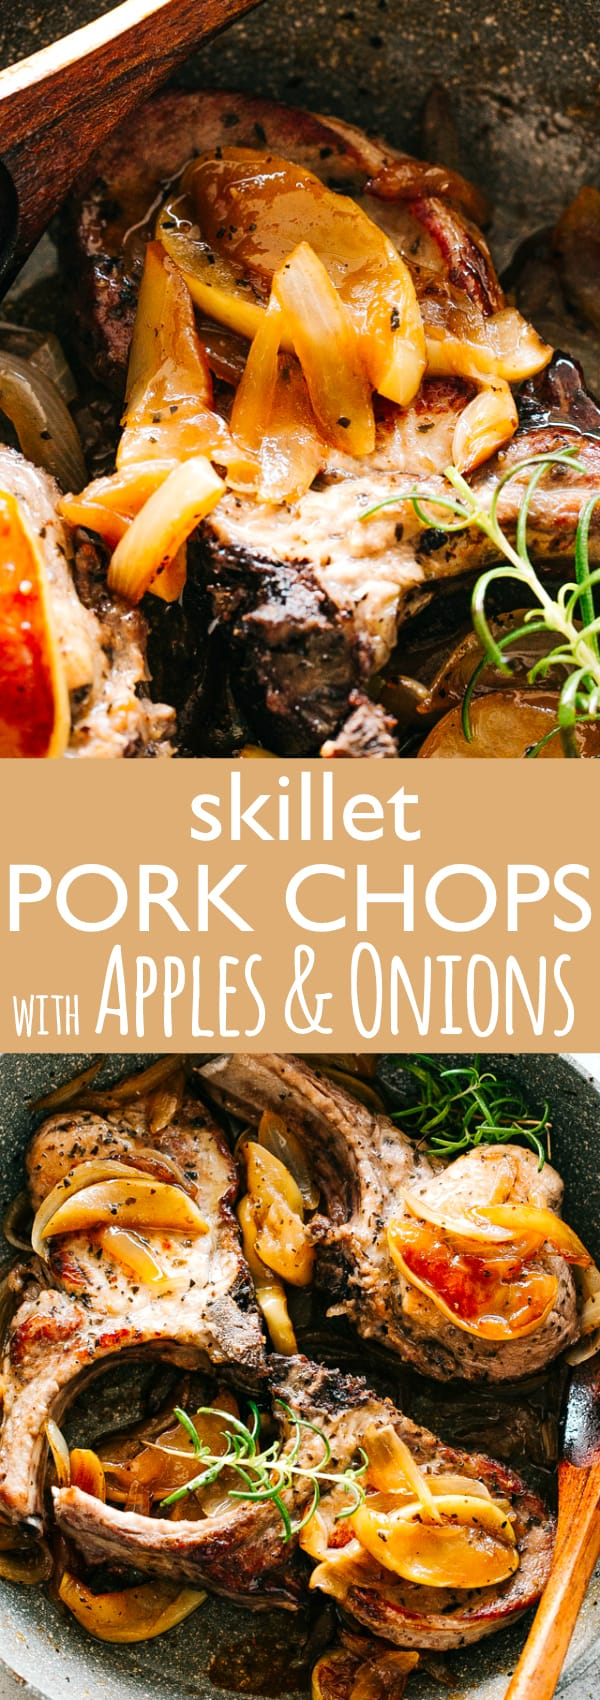 Skillet Pork Chops with Apples and Onions - Deliciously seared pork chops in a sweet and tart pan sauce, topped with tender sautéed apples and onions. An amazing, restaurant-quality meal perfect for busy weeknights.#pork #easyrecipes #easydinner #porkchops #apples #dinnerrecipes #30minutemeal